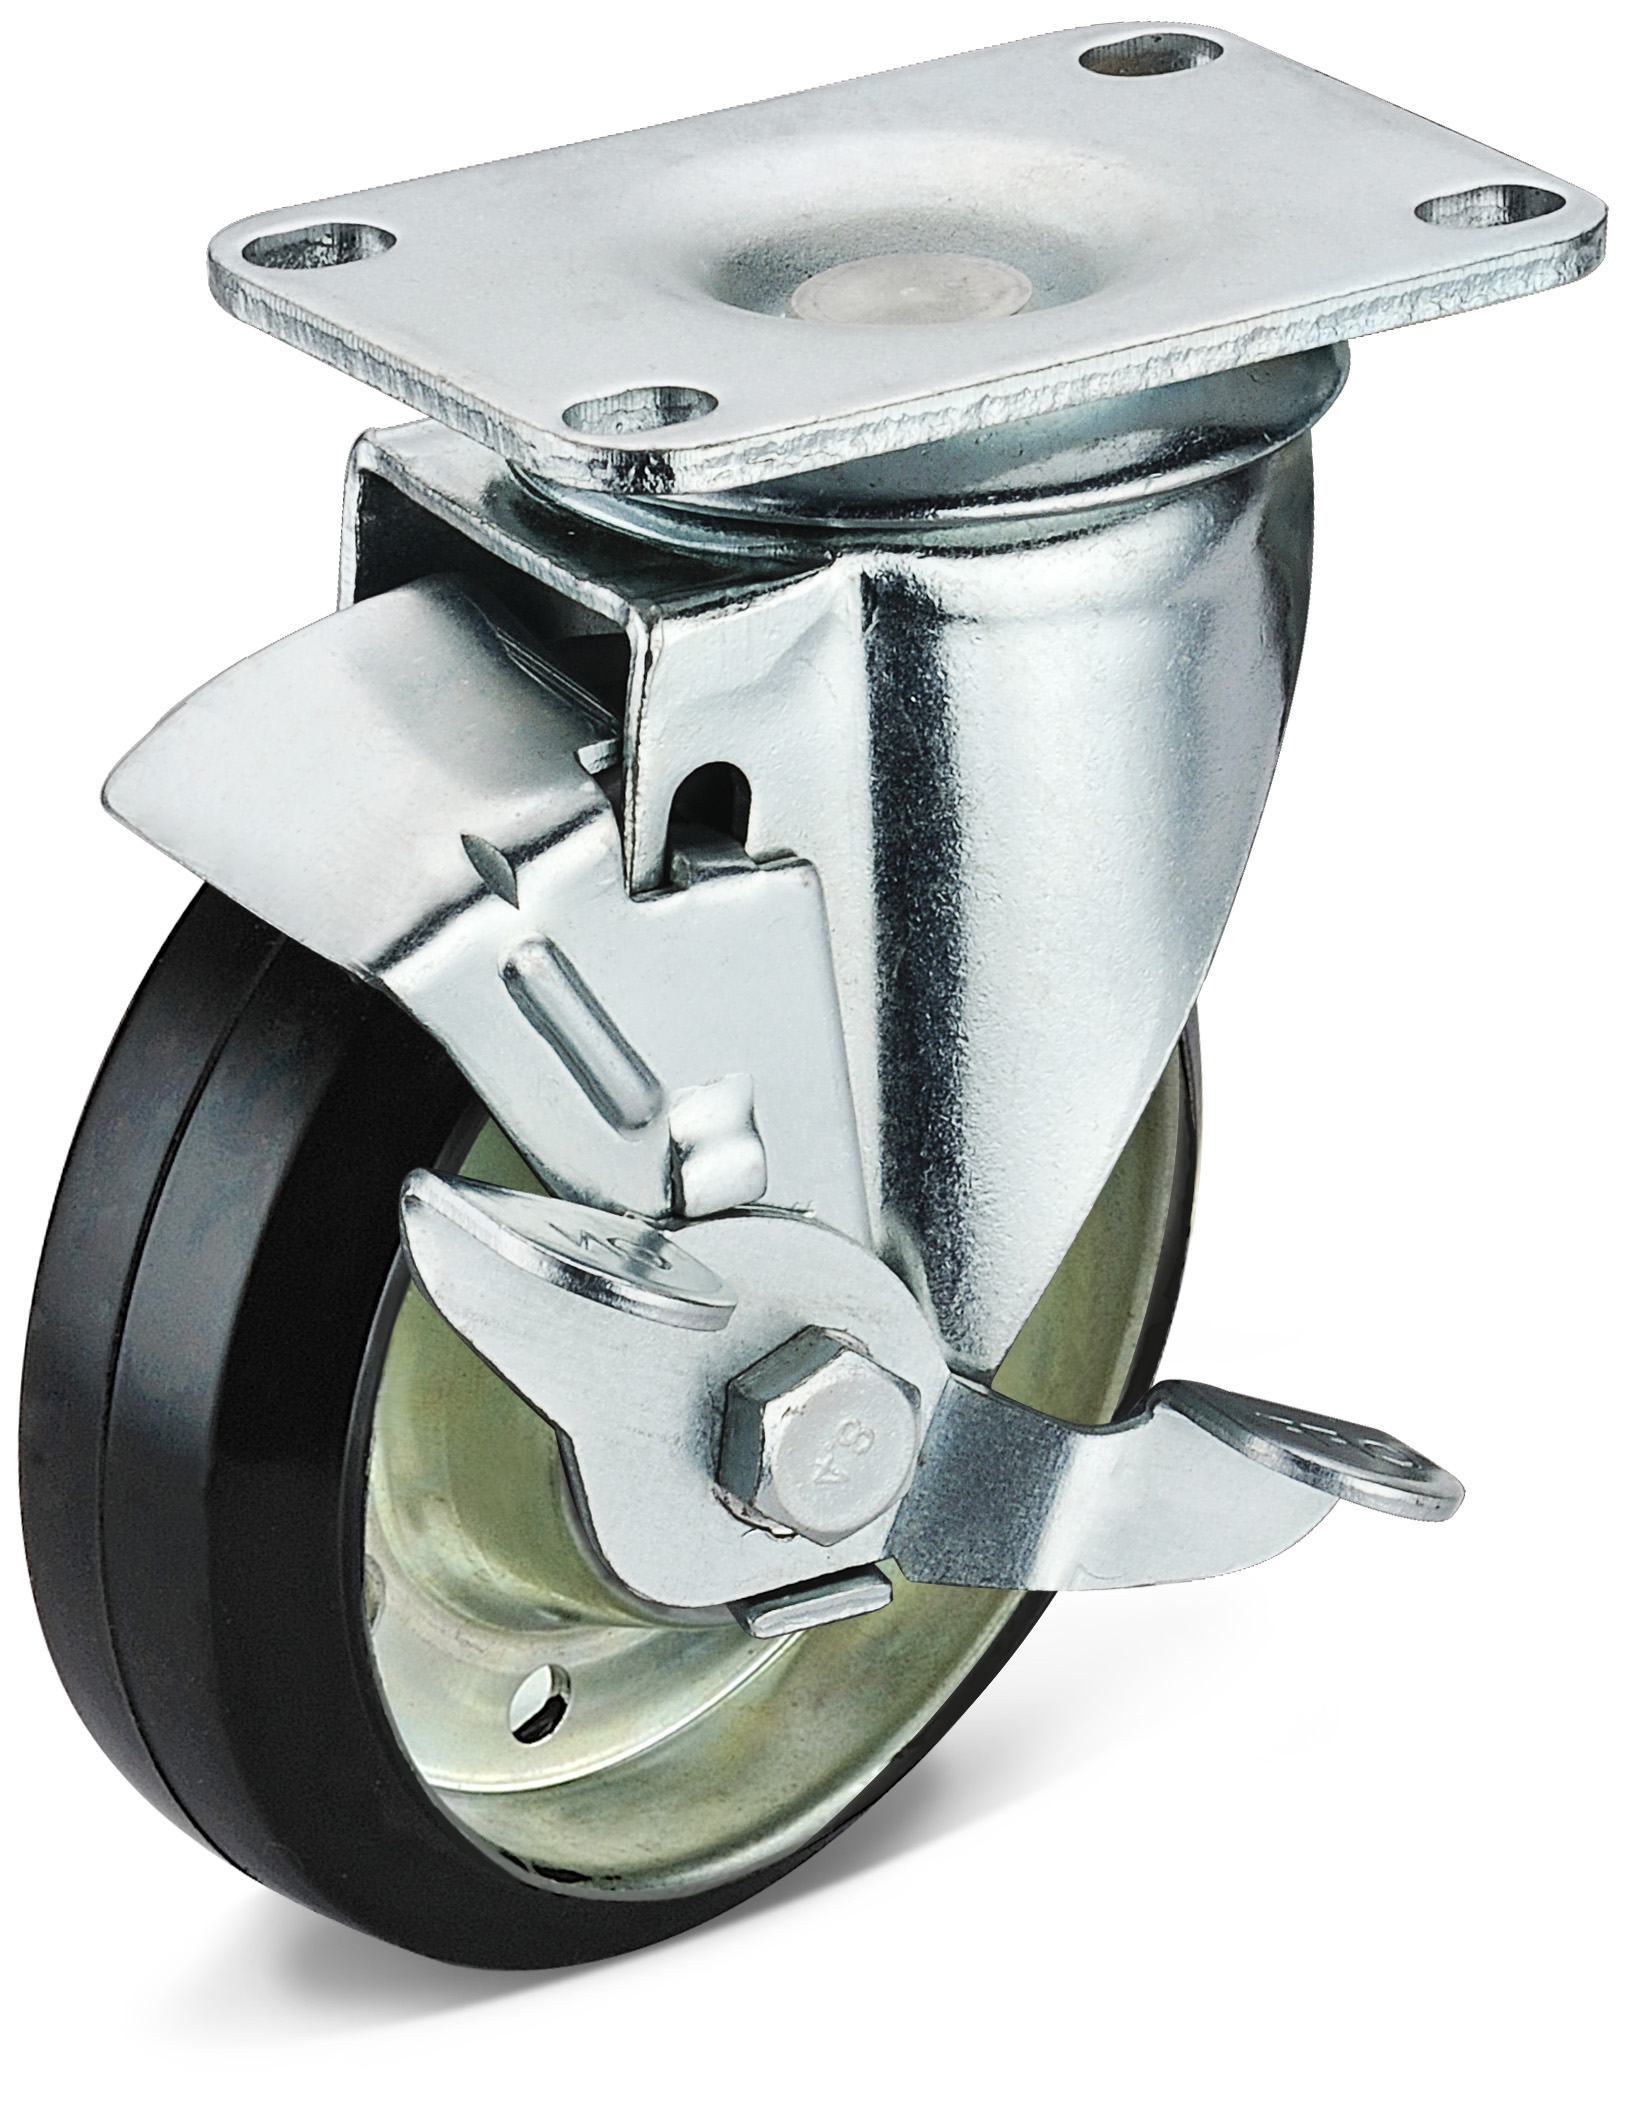 Heavy Duty Casters for Construction Equipment